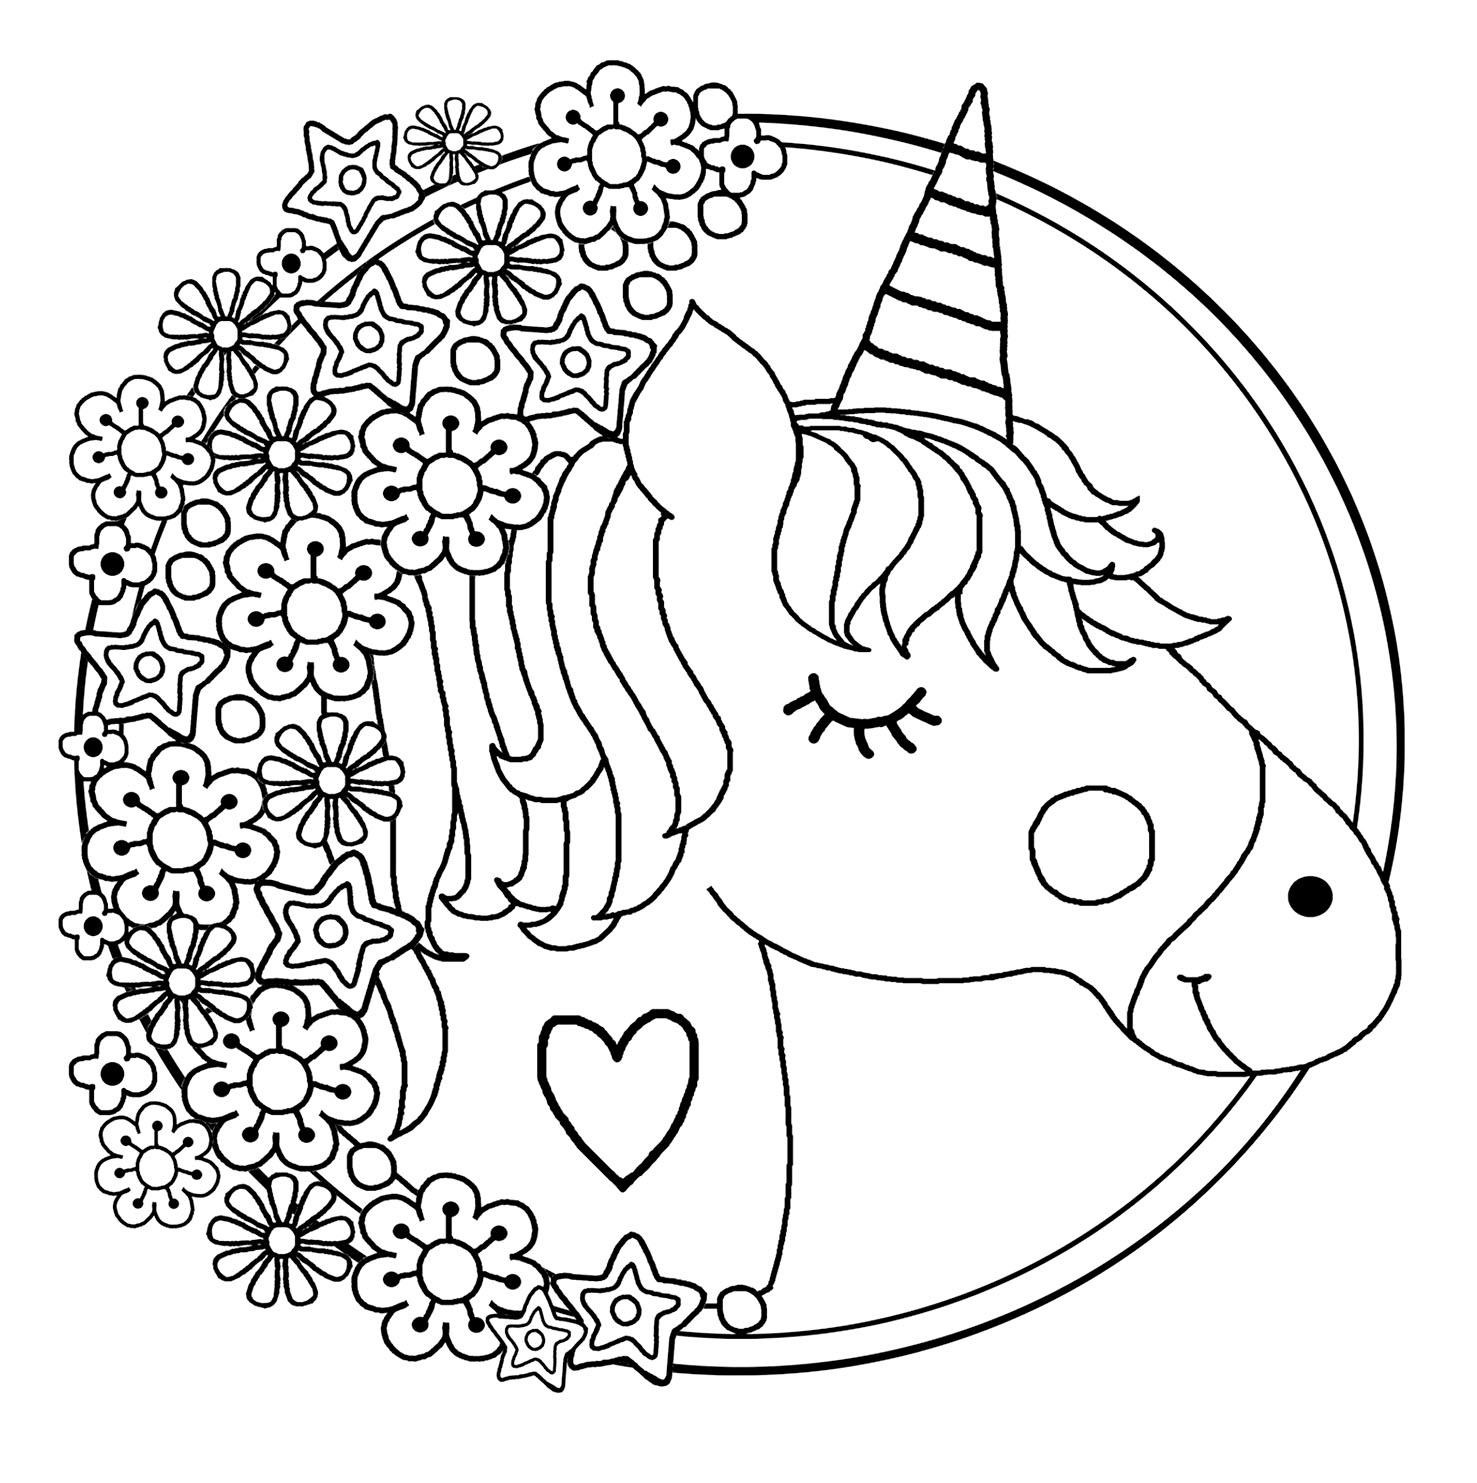 Head of unicorn Coloring Page